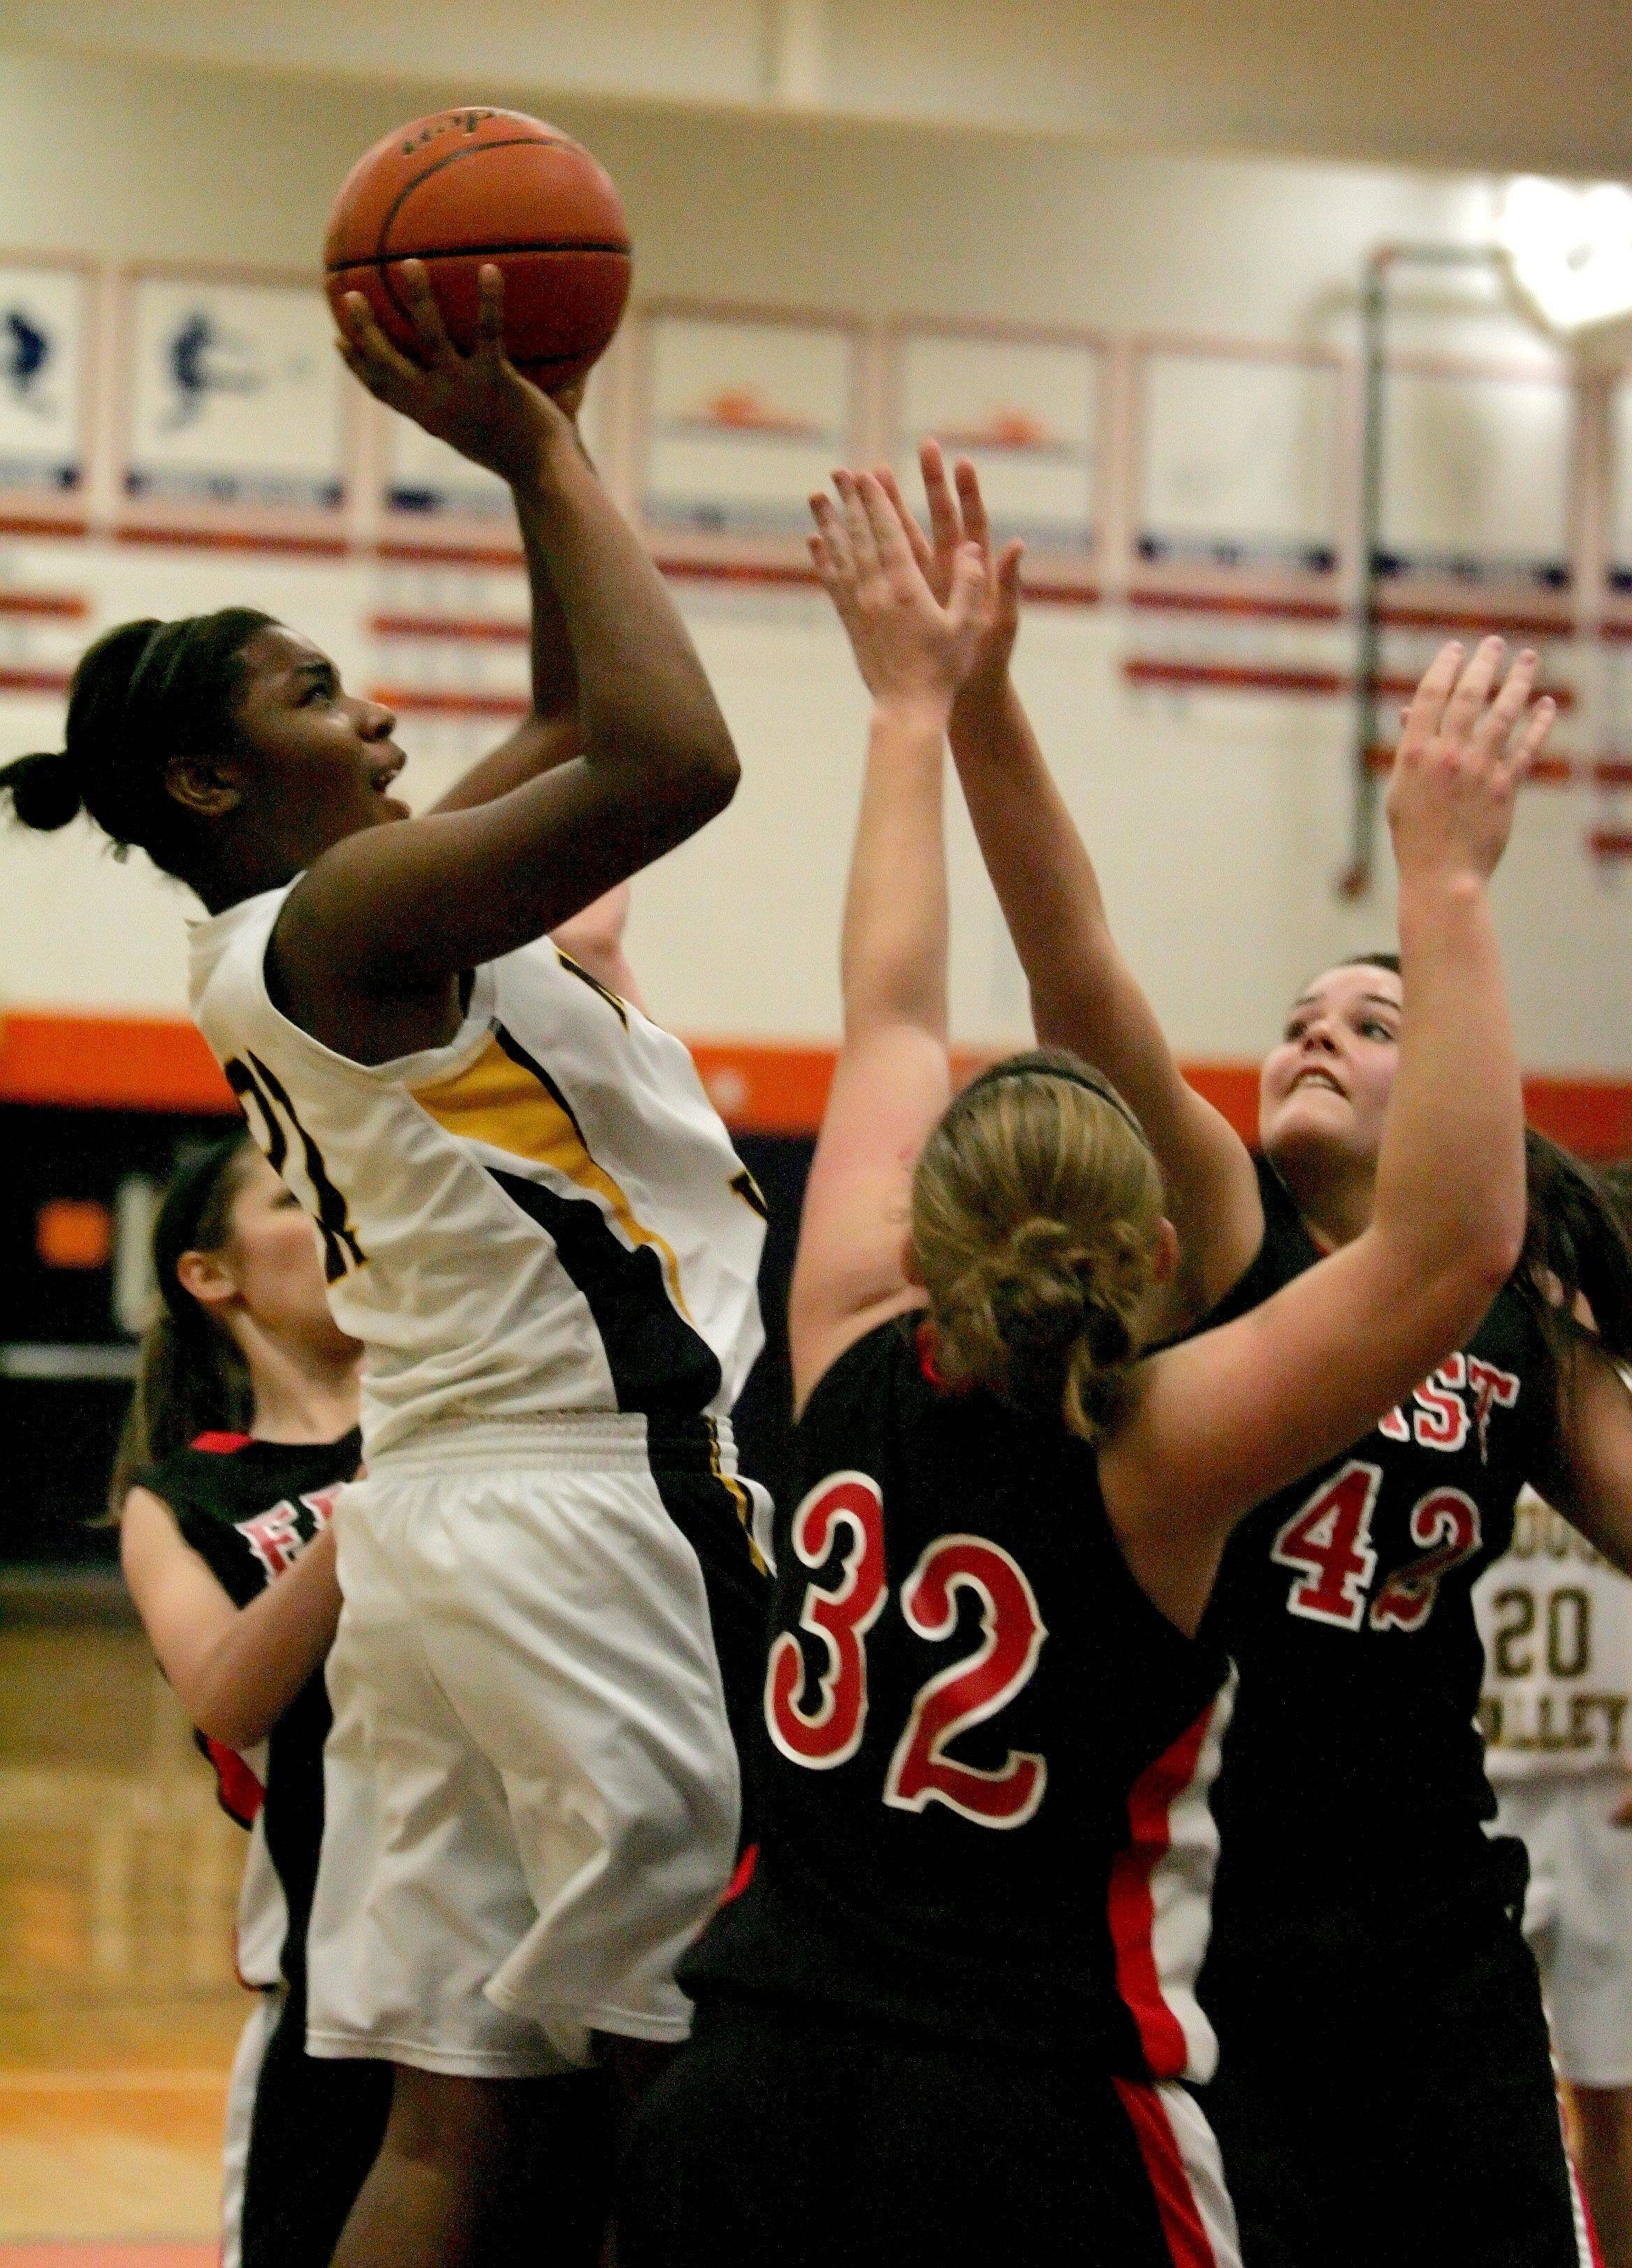 Amber Smith of Neuqua Valley, left, takes a shot over Megan Shannon, center, and Sarah Moylan, right of Glenbard East.